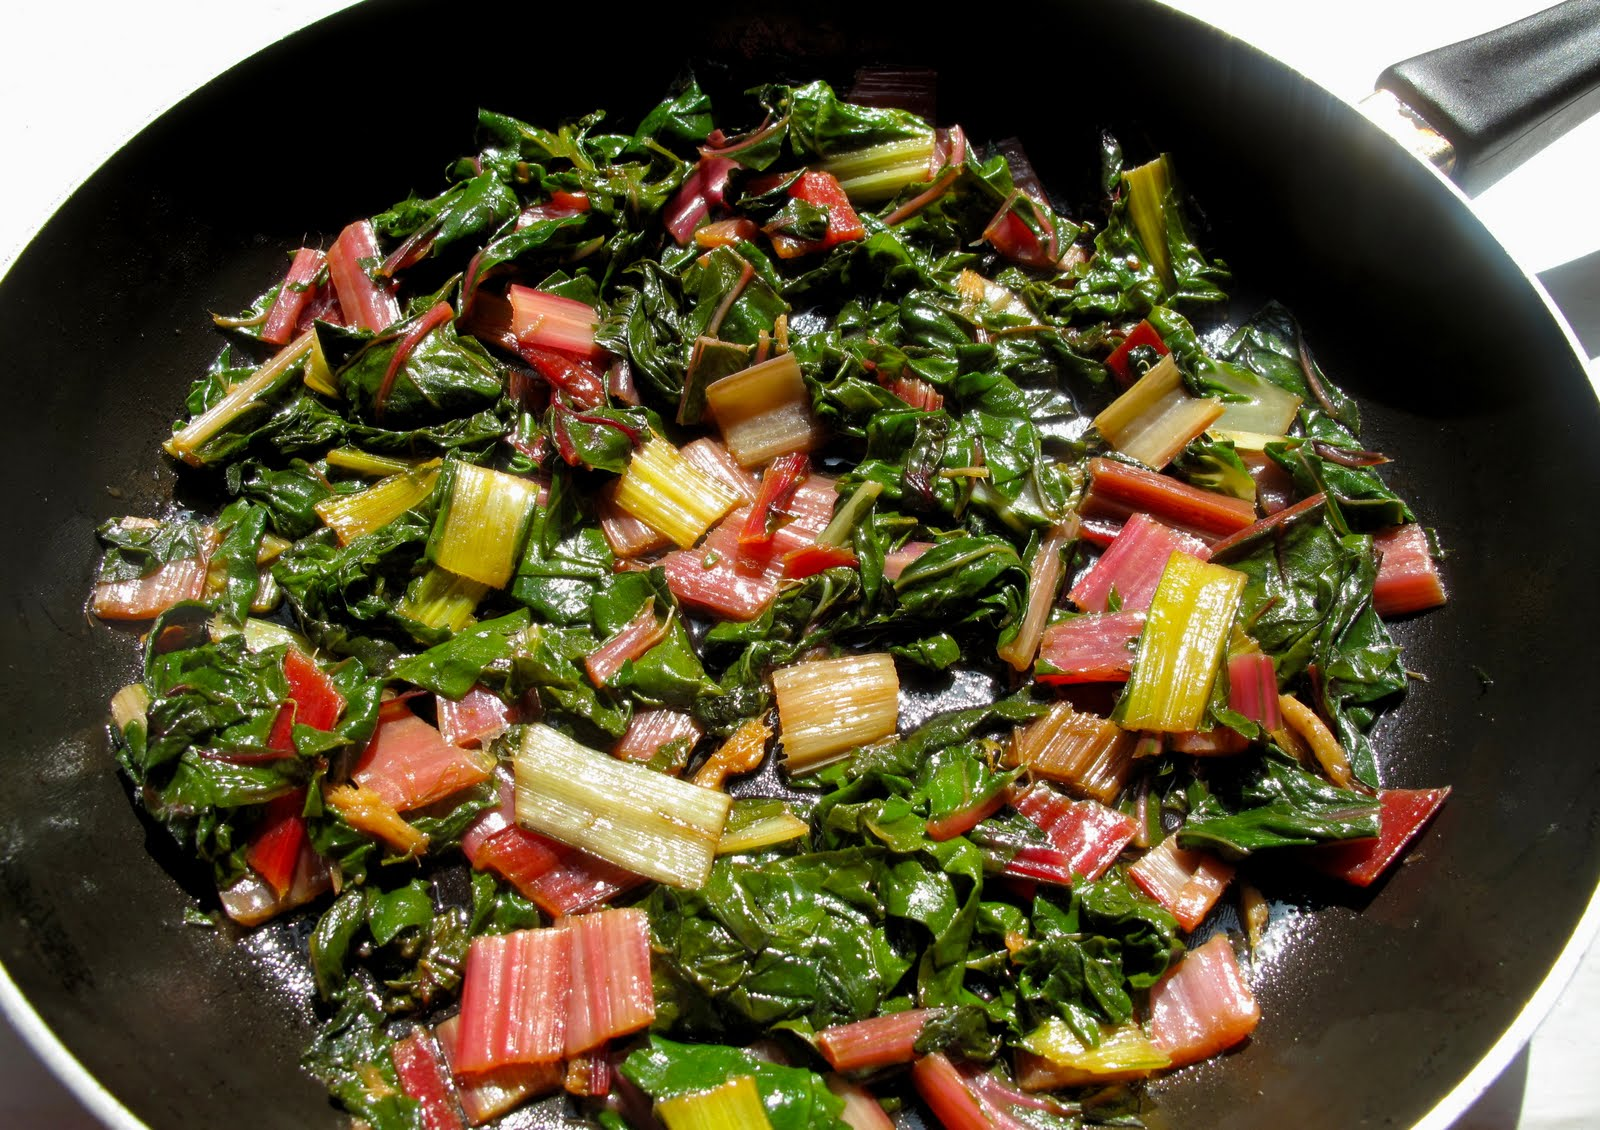 Sauteed Rainbow Chard and Carrots with Red Quinoa | Food For Vitality